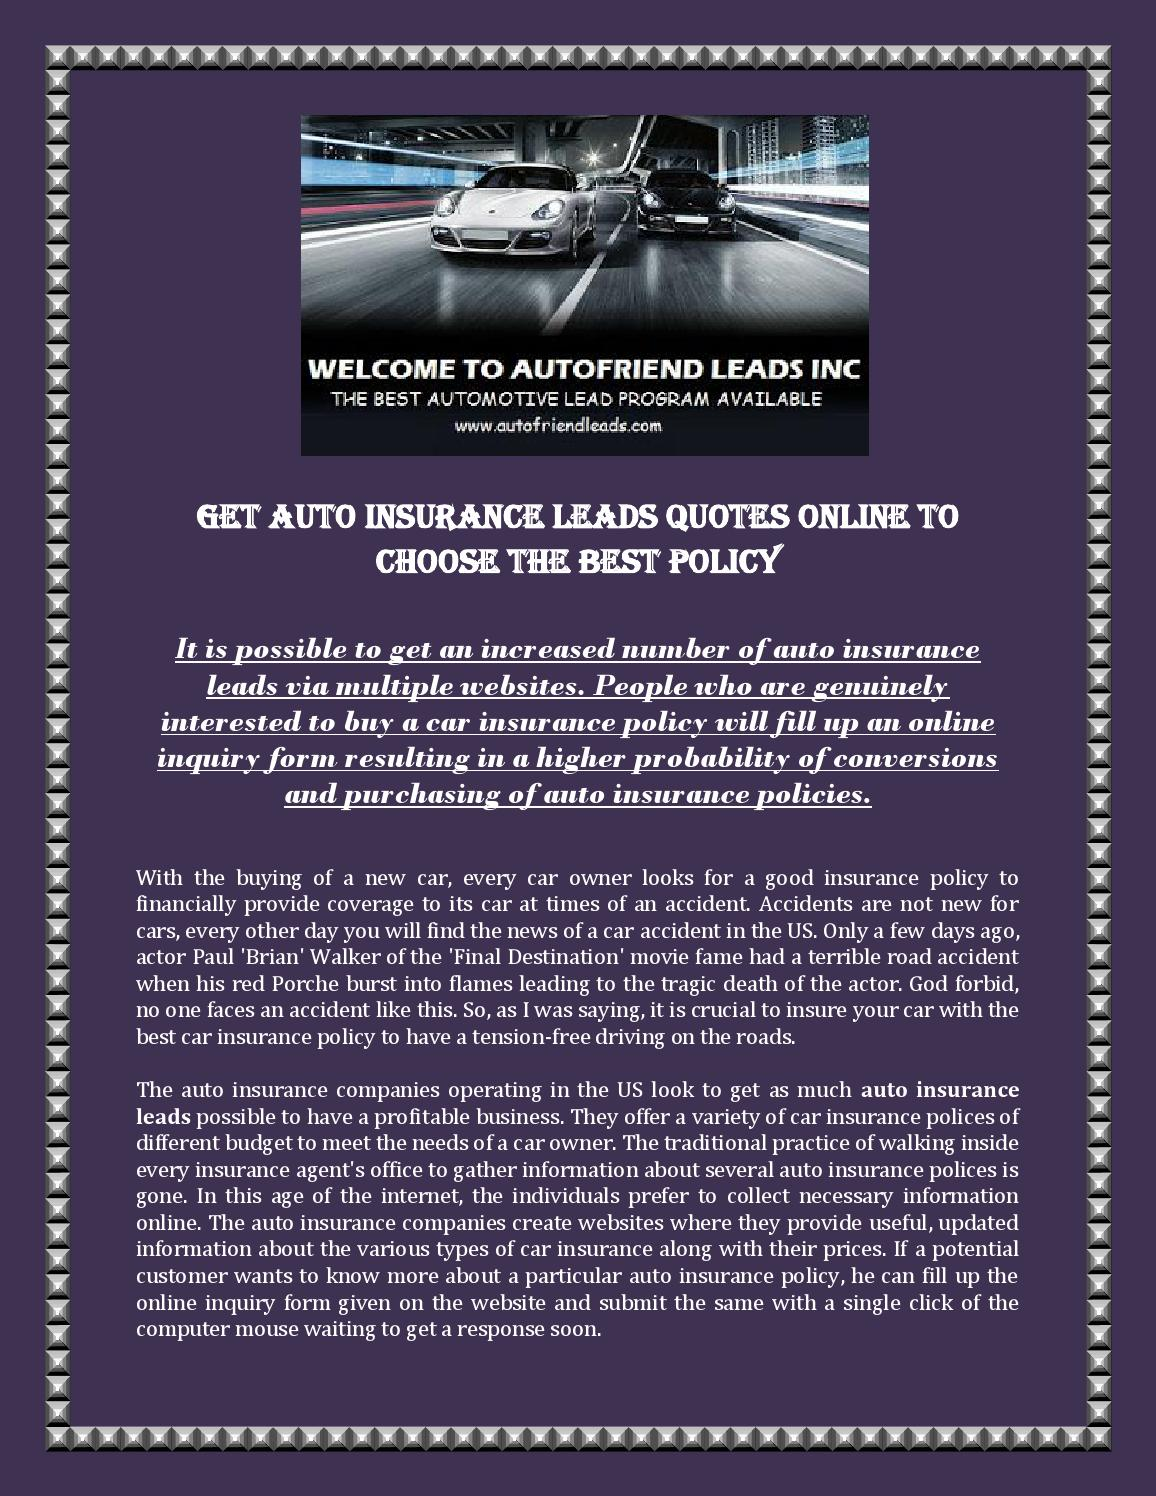 Get Auto Insurance Leads Quotes Online to Choose the Best ...